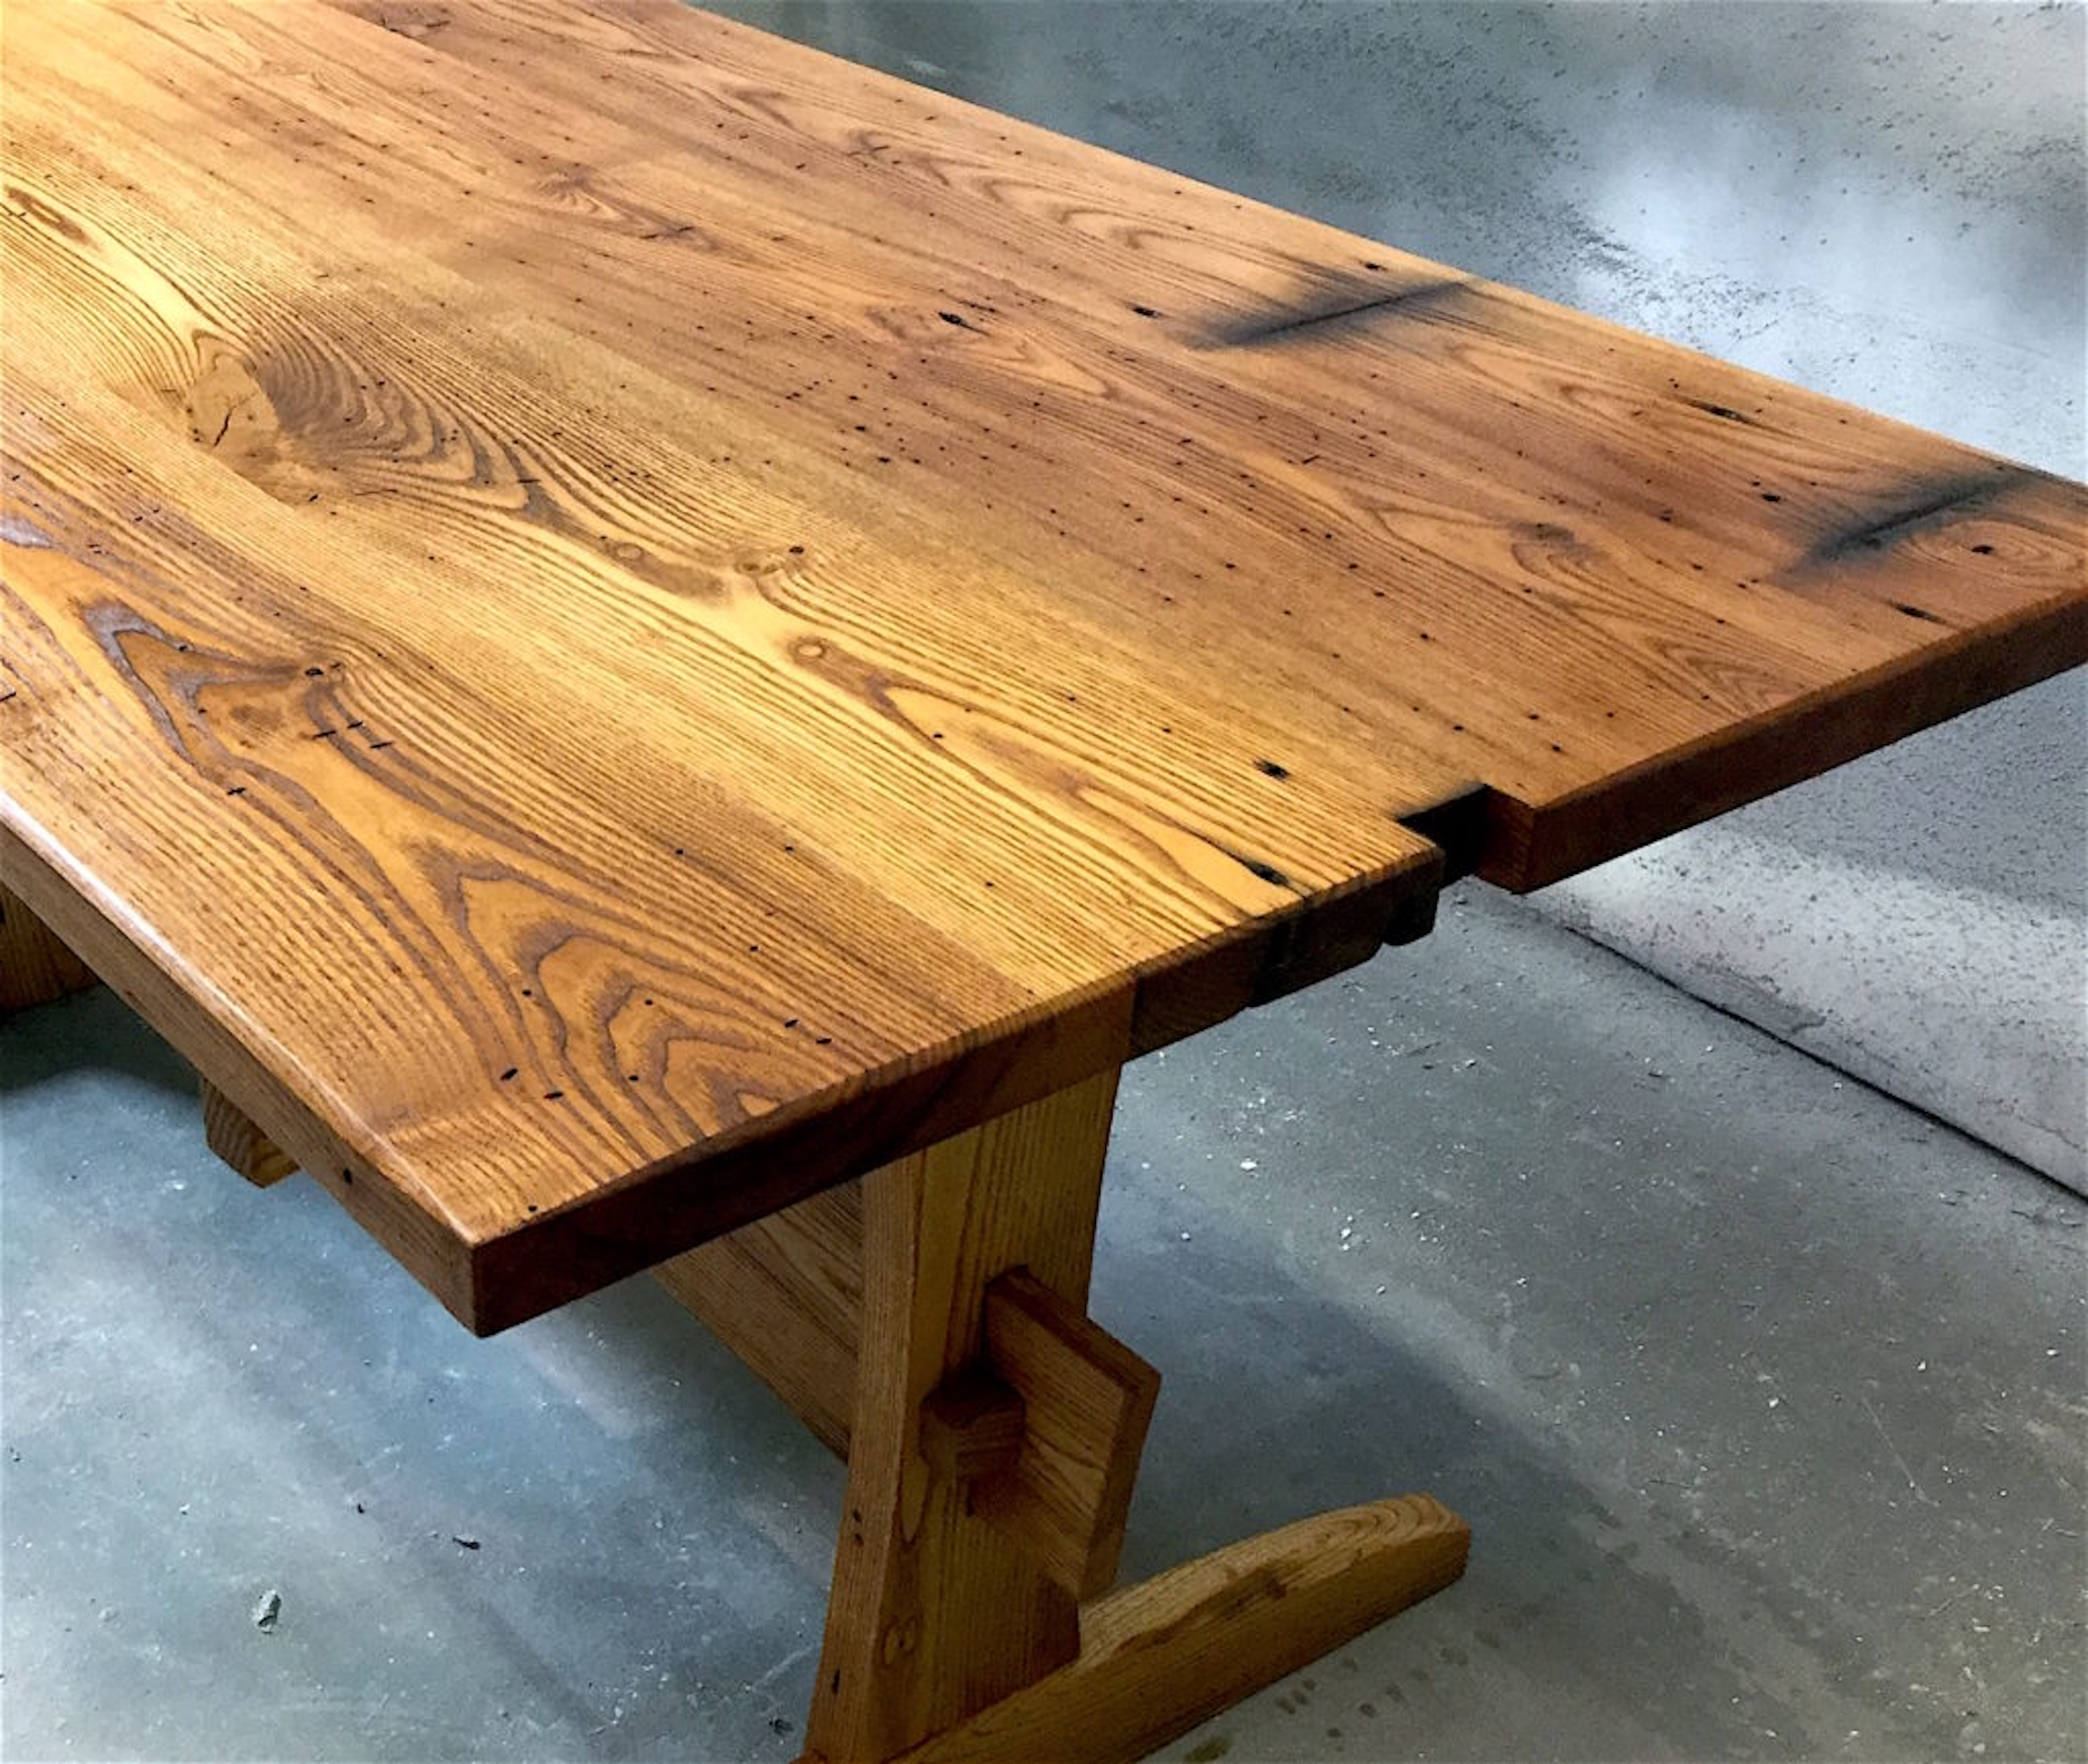 Trestle-style table made from reclaimed chestnut lumber sourced by Rousseau Reclaimed Lumber & Flooring in South Portland, Maine